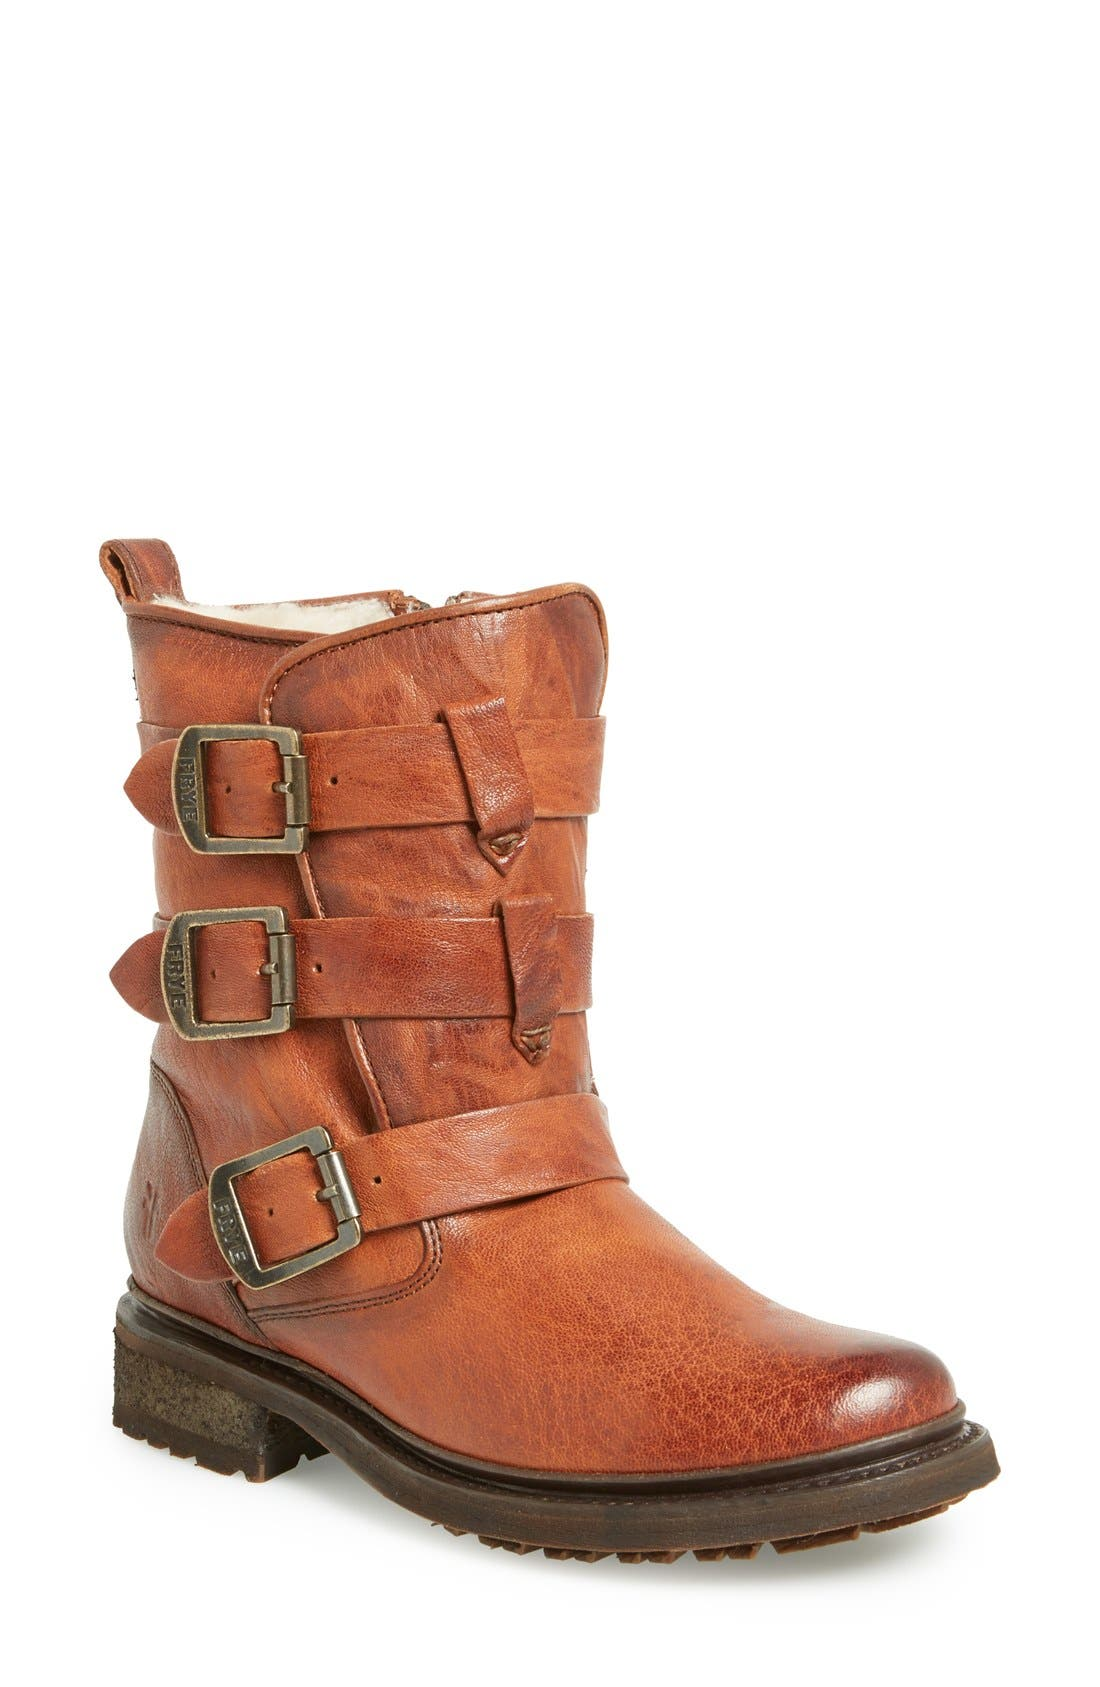 Main Image - Frye 'Valerie' Shearling Lined Strappy Boot (Women)